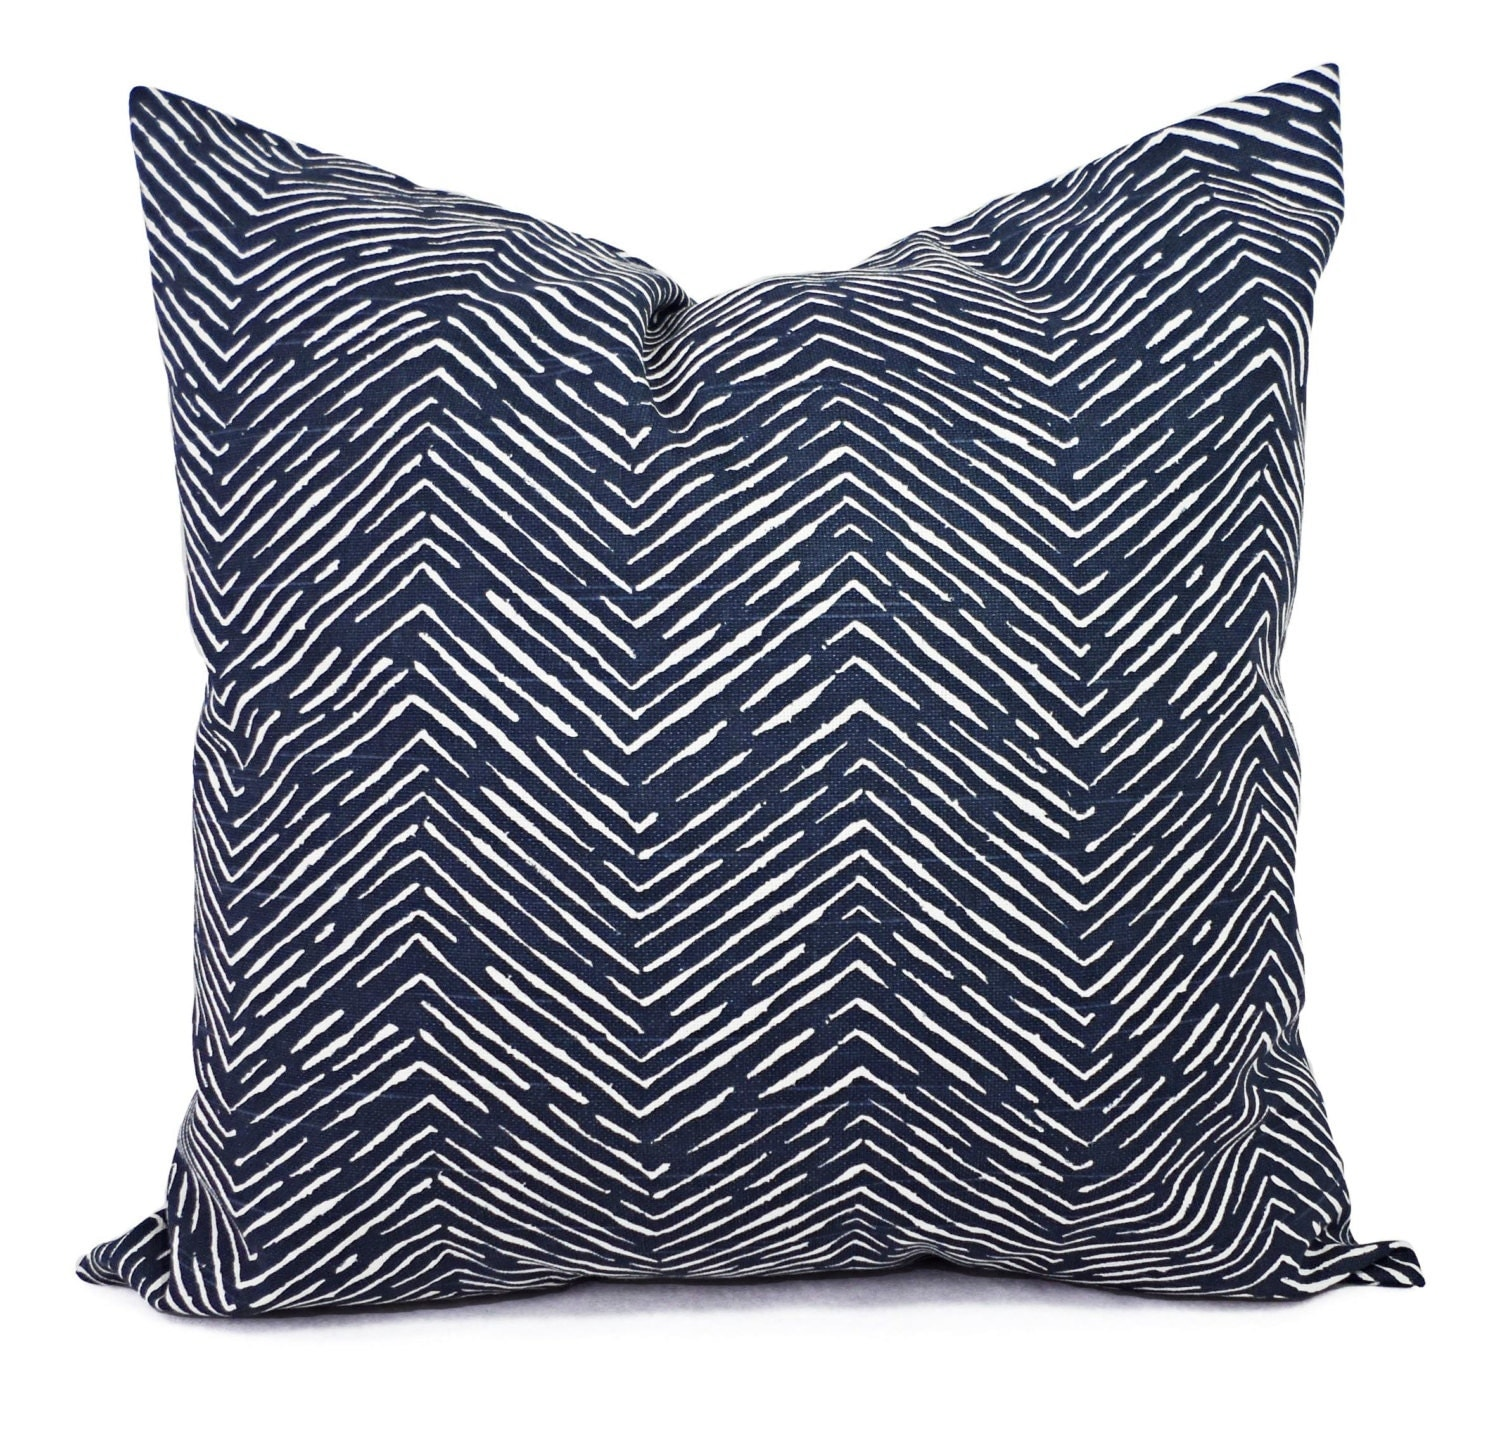 Blue Decorative Pillow Covers Two Navy Chevron Throw Pillow